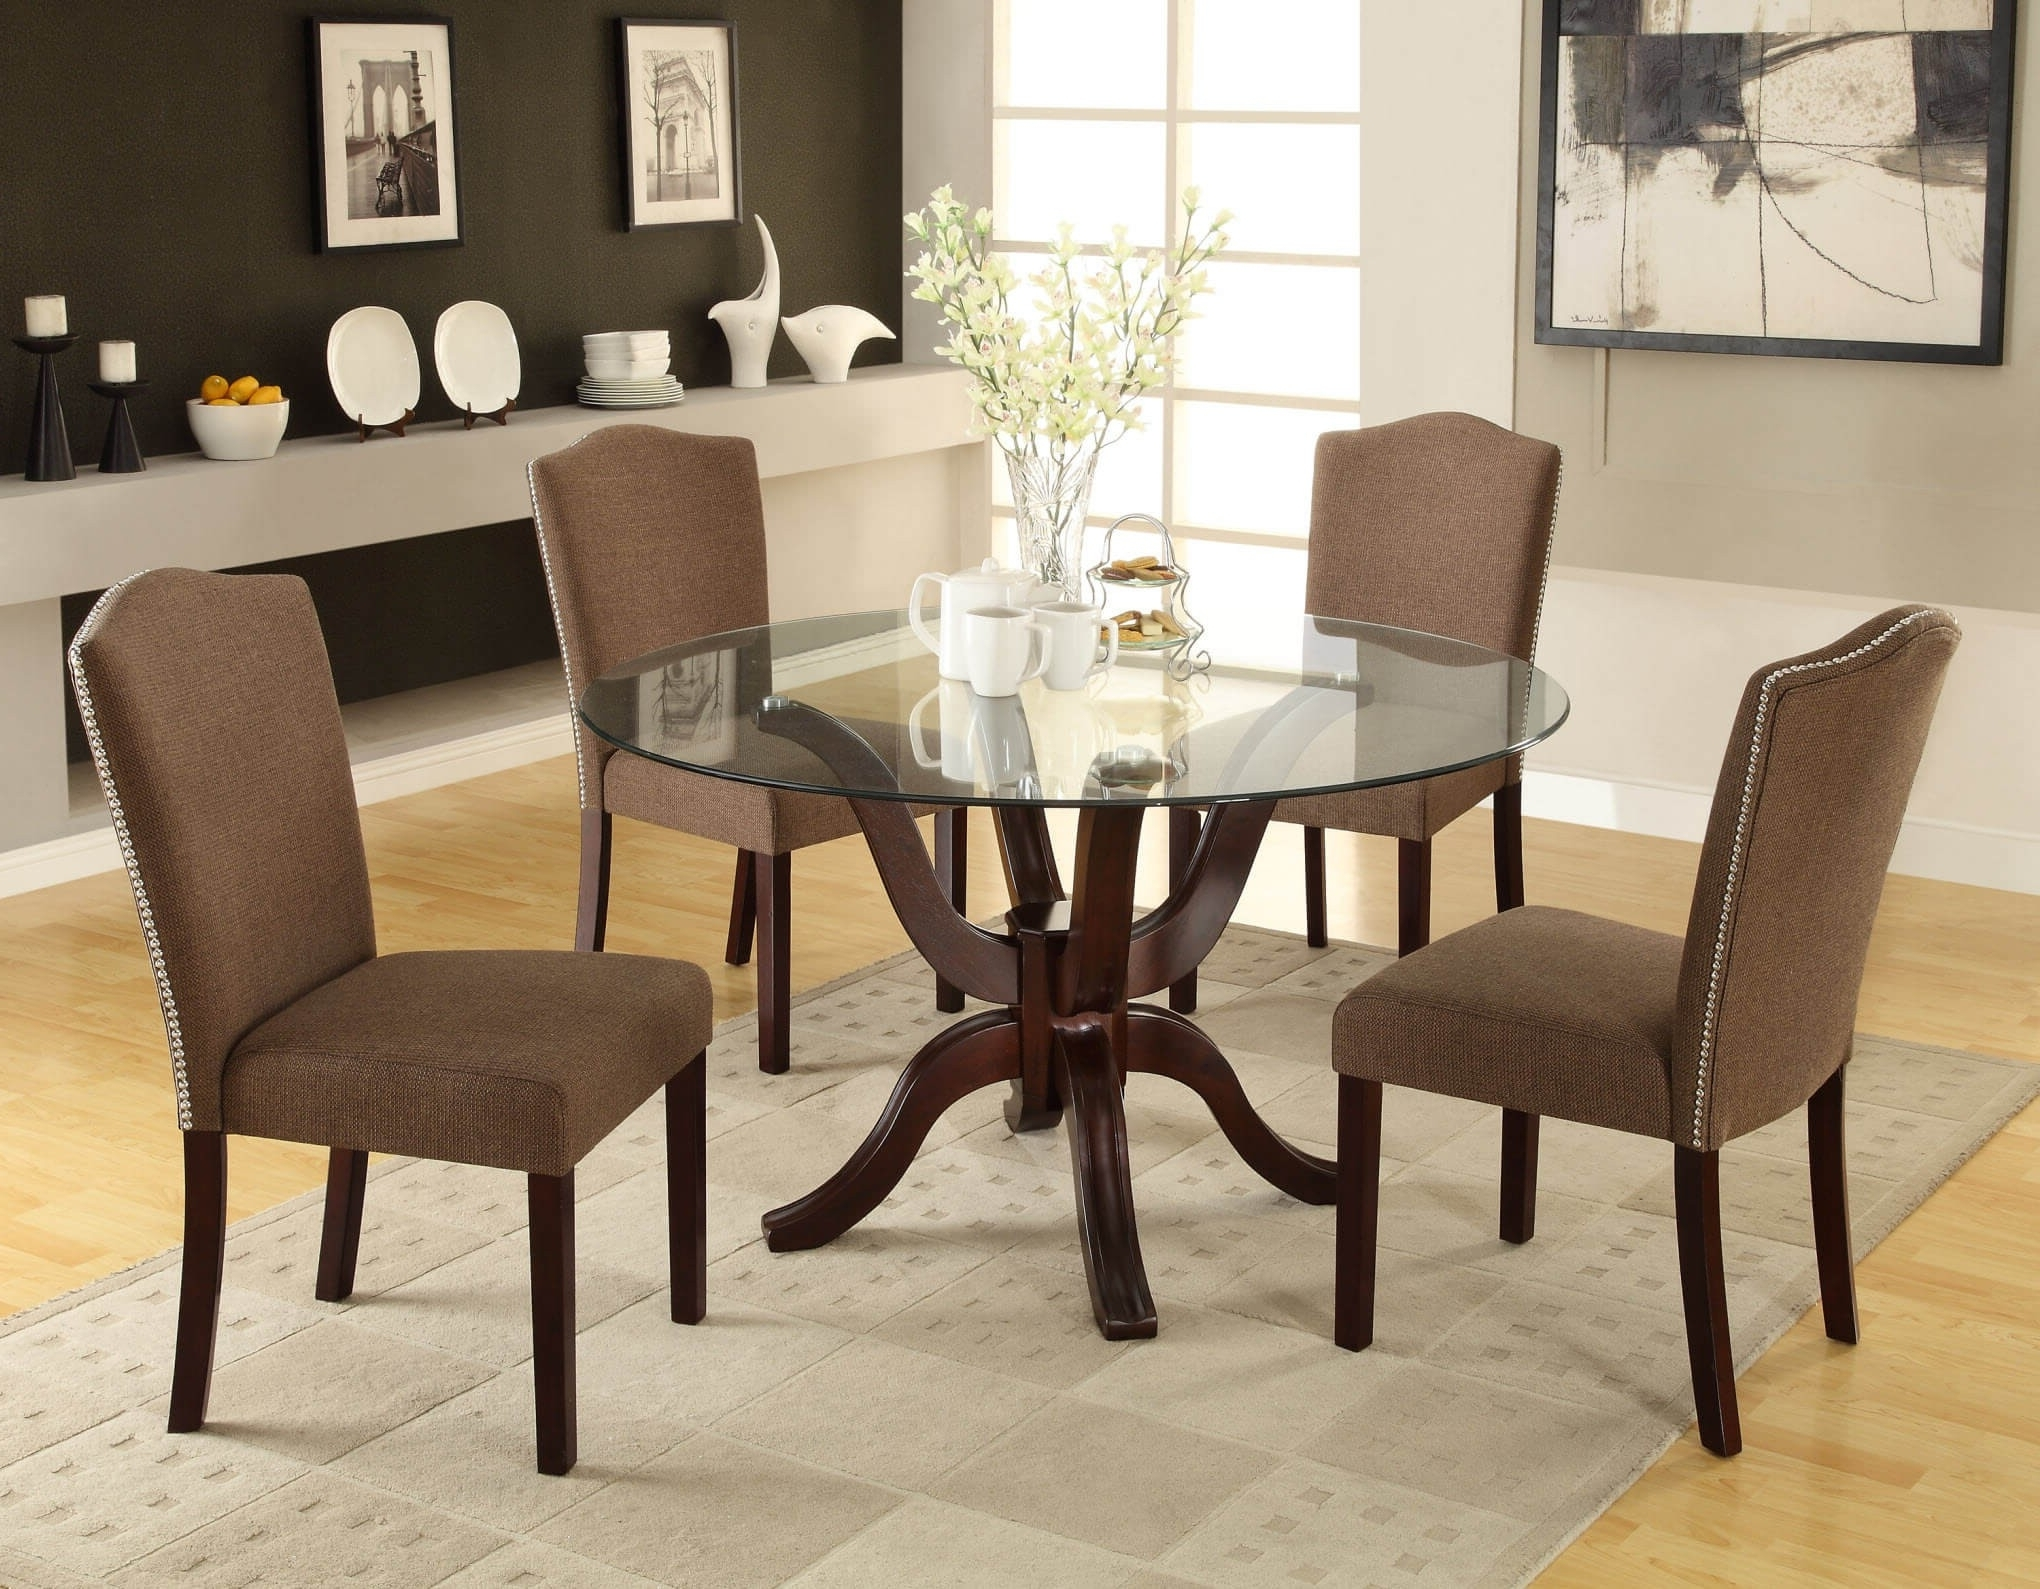 Cheap Glass Dining Tables And 6 Chairs Regarding Best And Newest Round Glass Dining Table Sets For 4 Best Of Round Glass Dining Table (View 19 of 25)